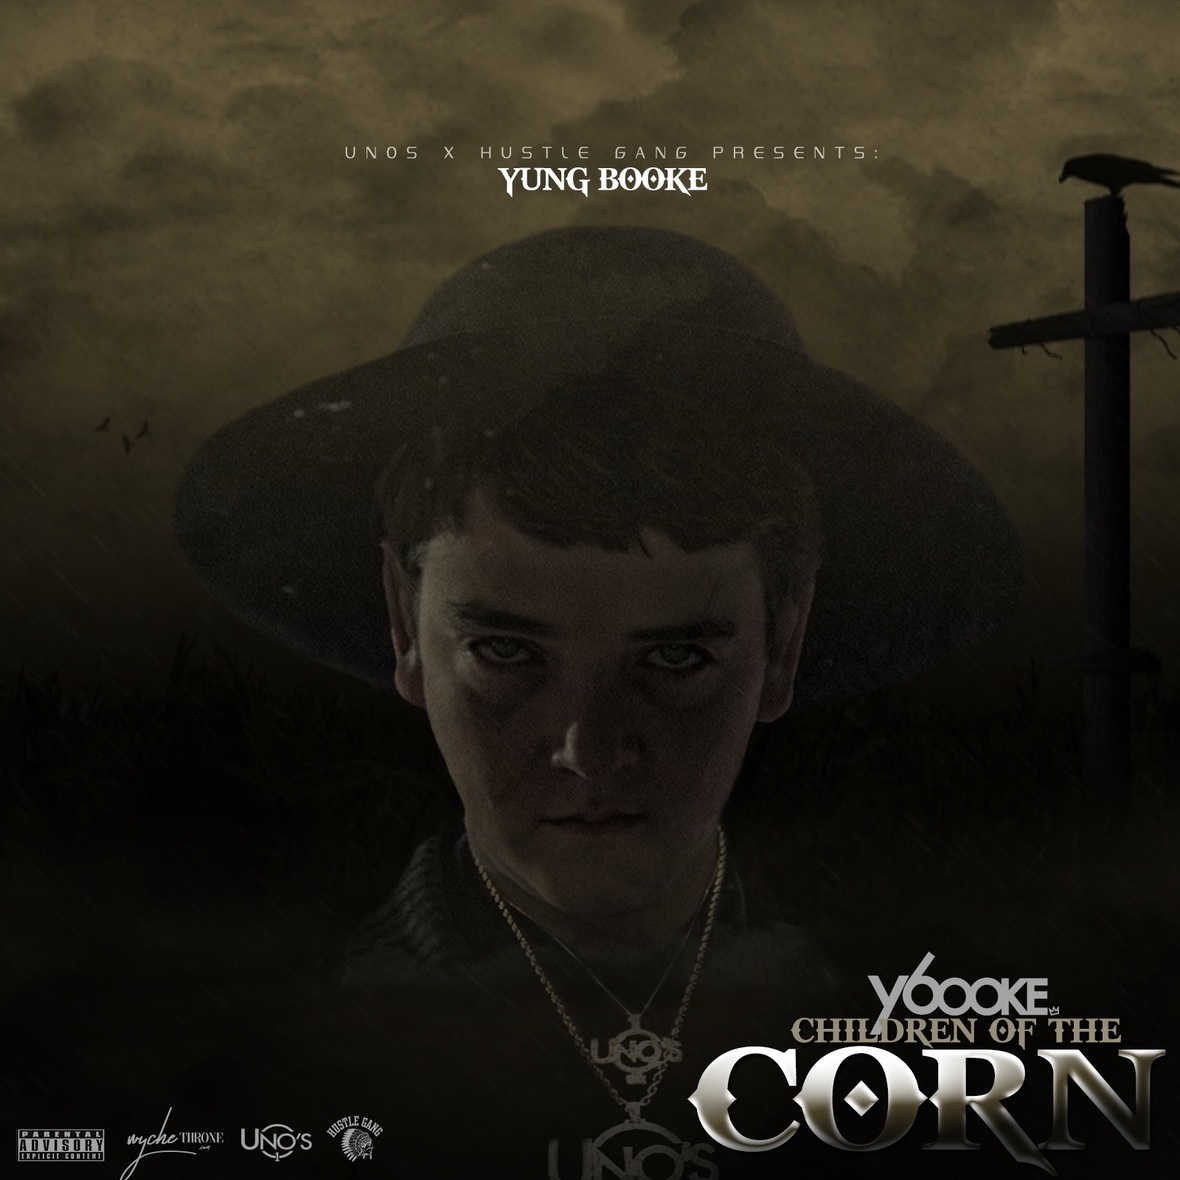 Hustle Gang's Yung Booke Releases New Mixtape 'Children Of The Corn' with Features From Young Dro, Dae Dae, Joe Gifted, Tokyo Jetz and More!